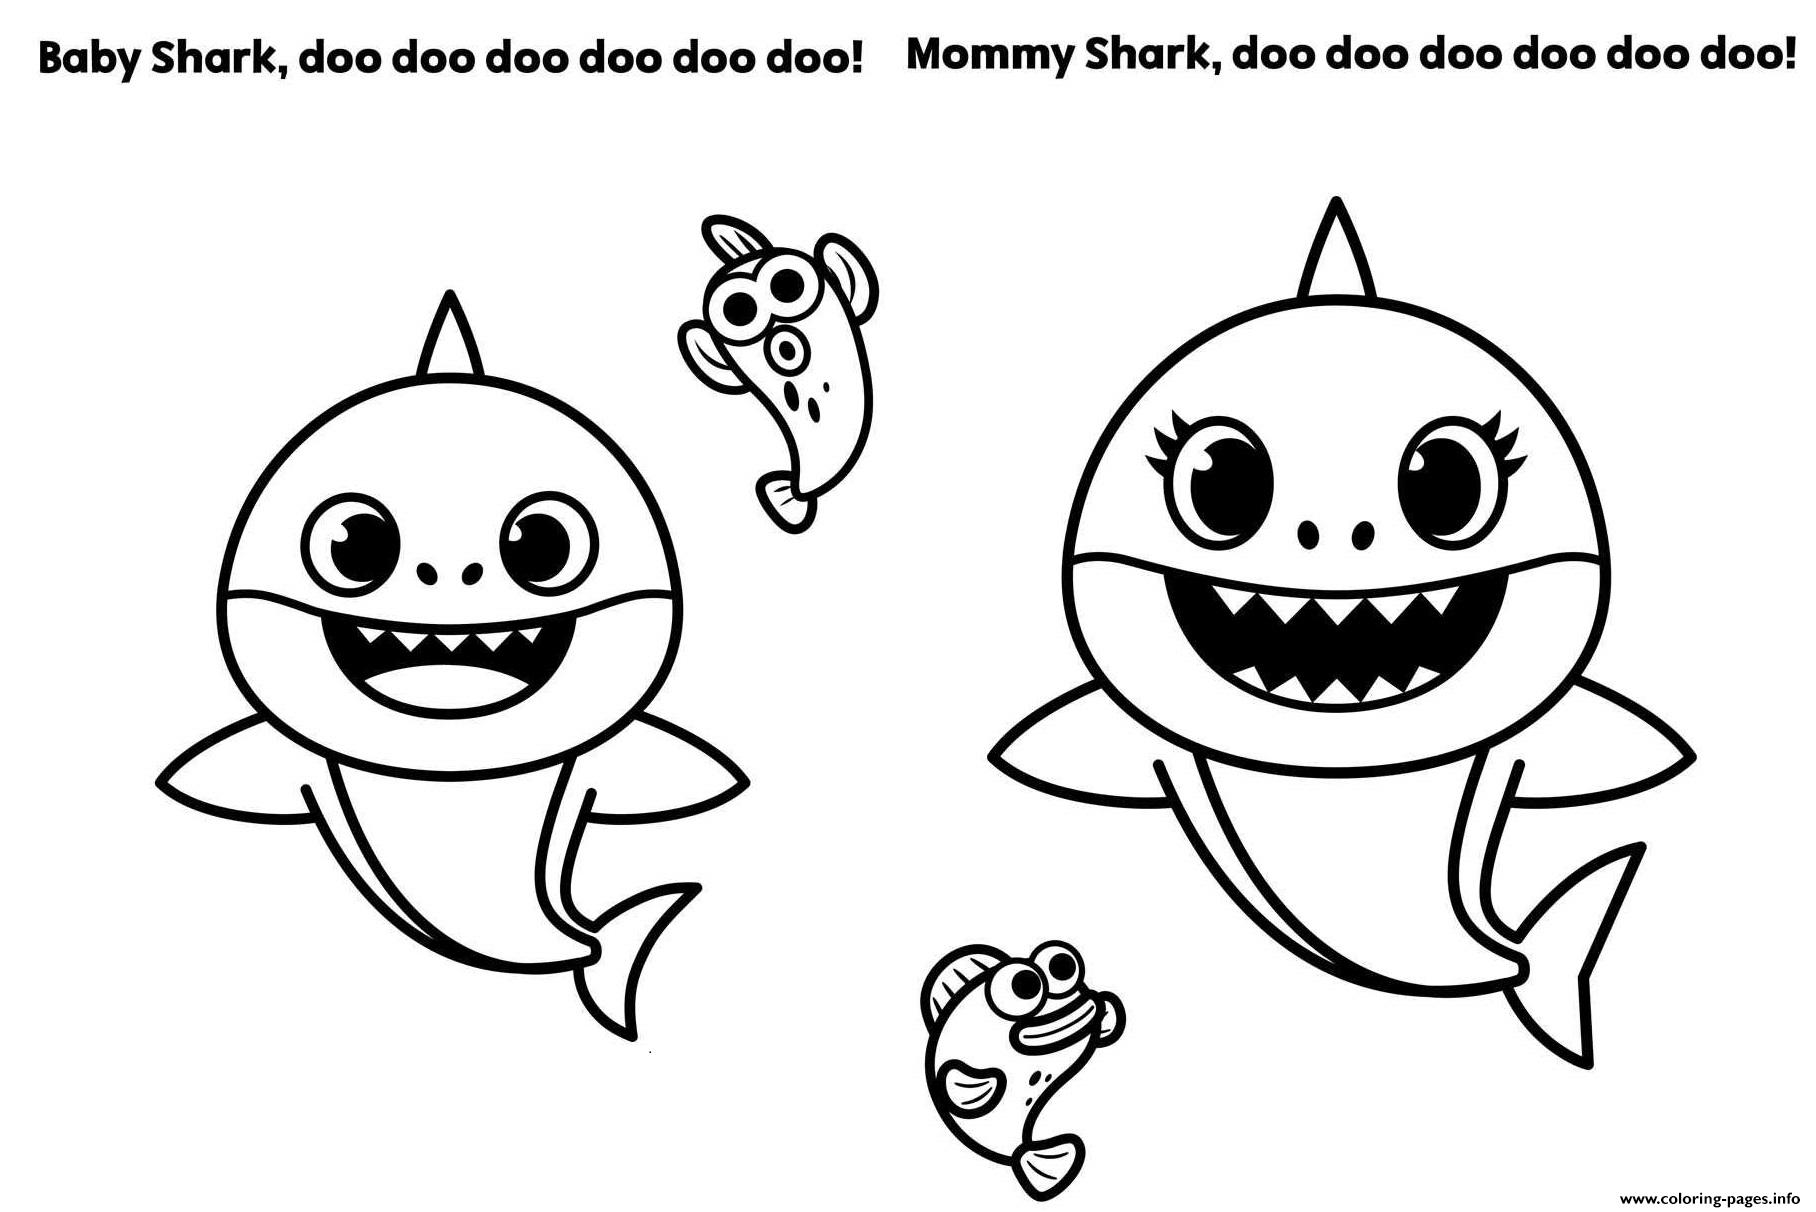 Baby Shark And Mommy Shark Coloring Pages Printable